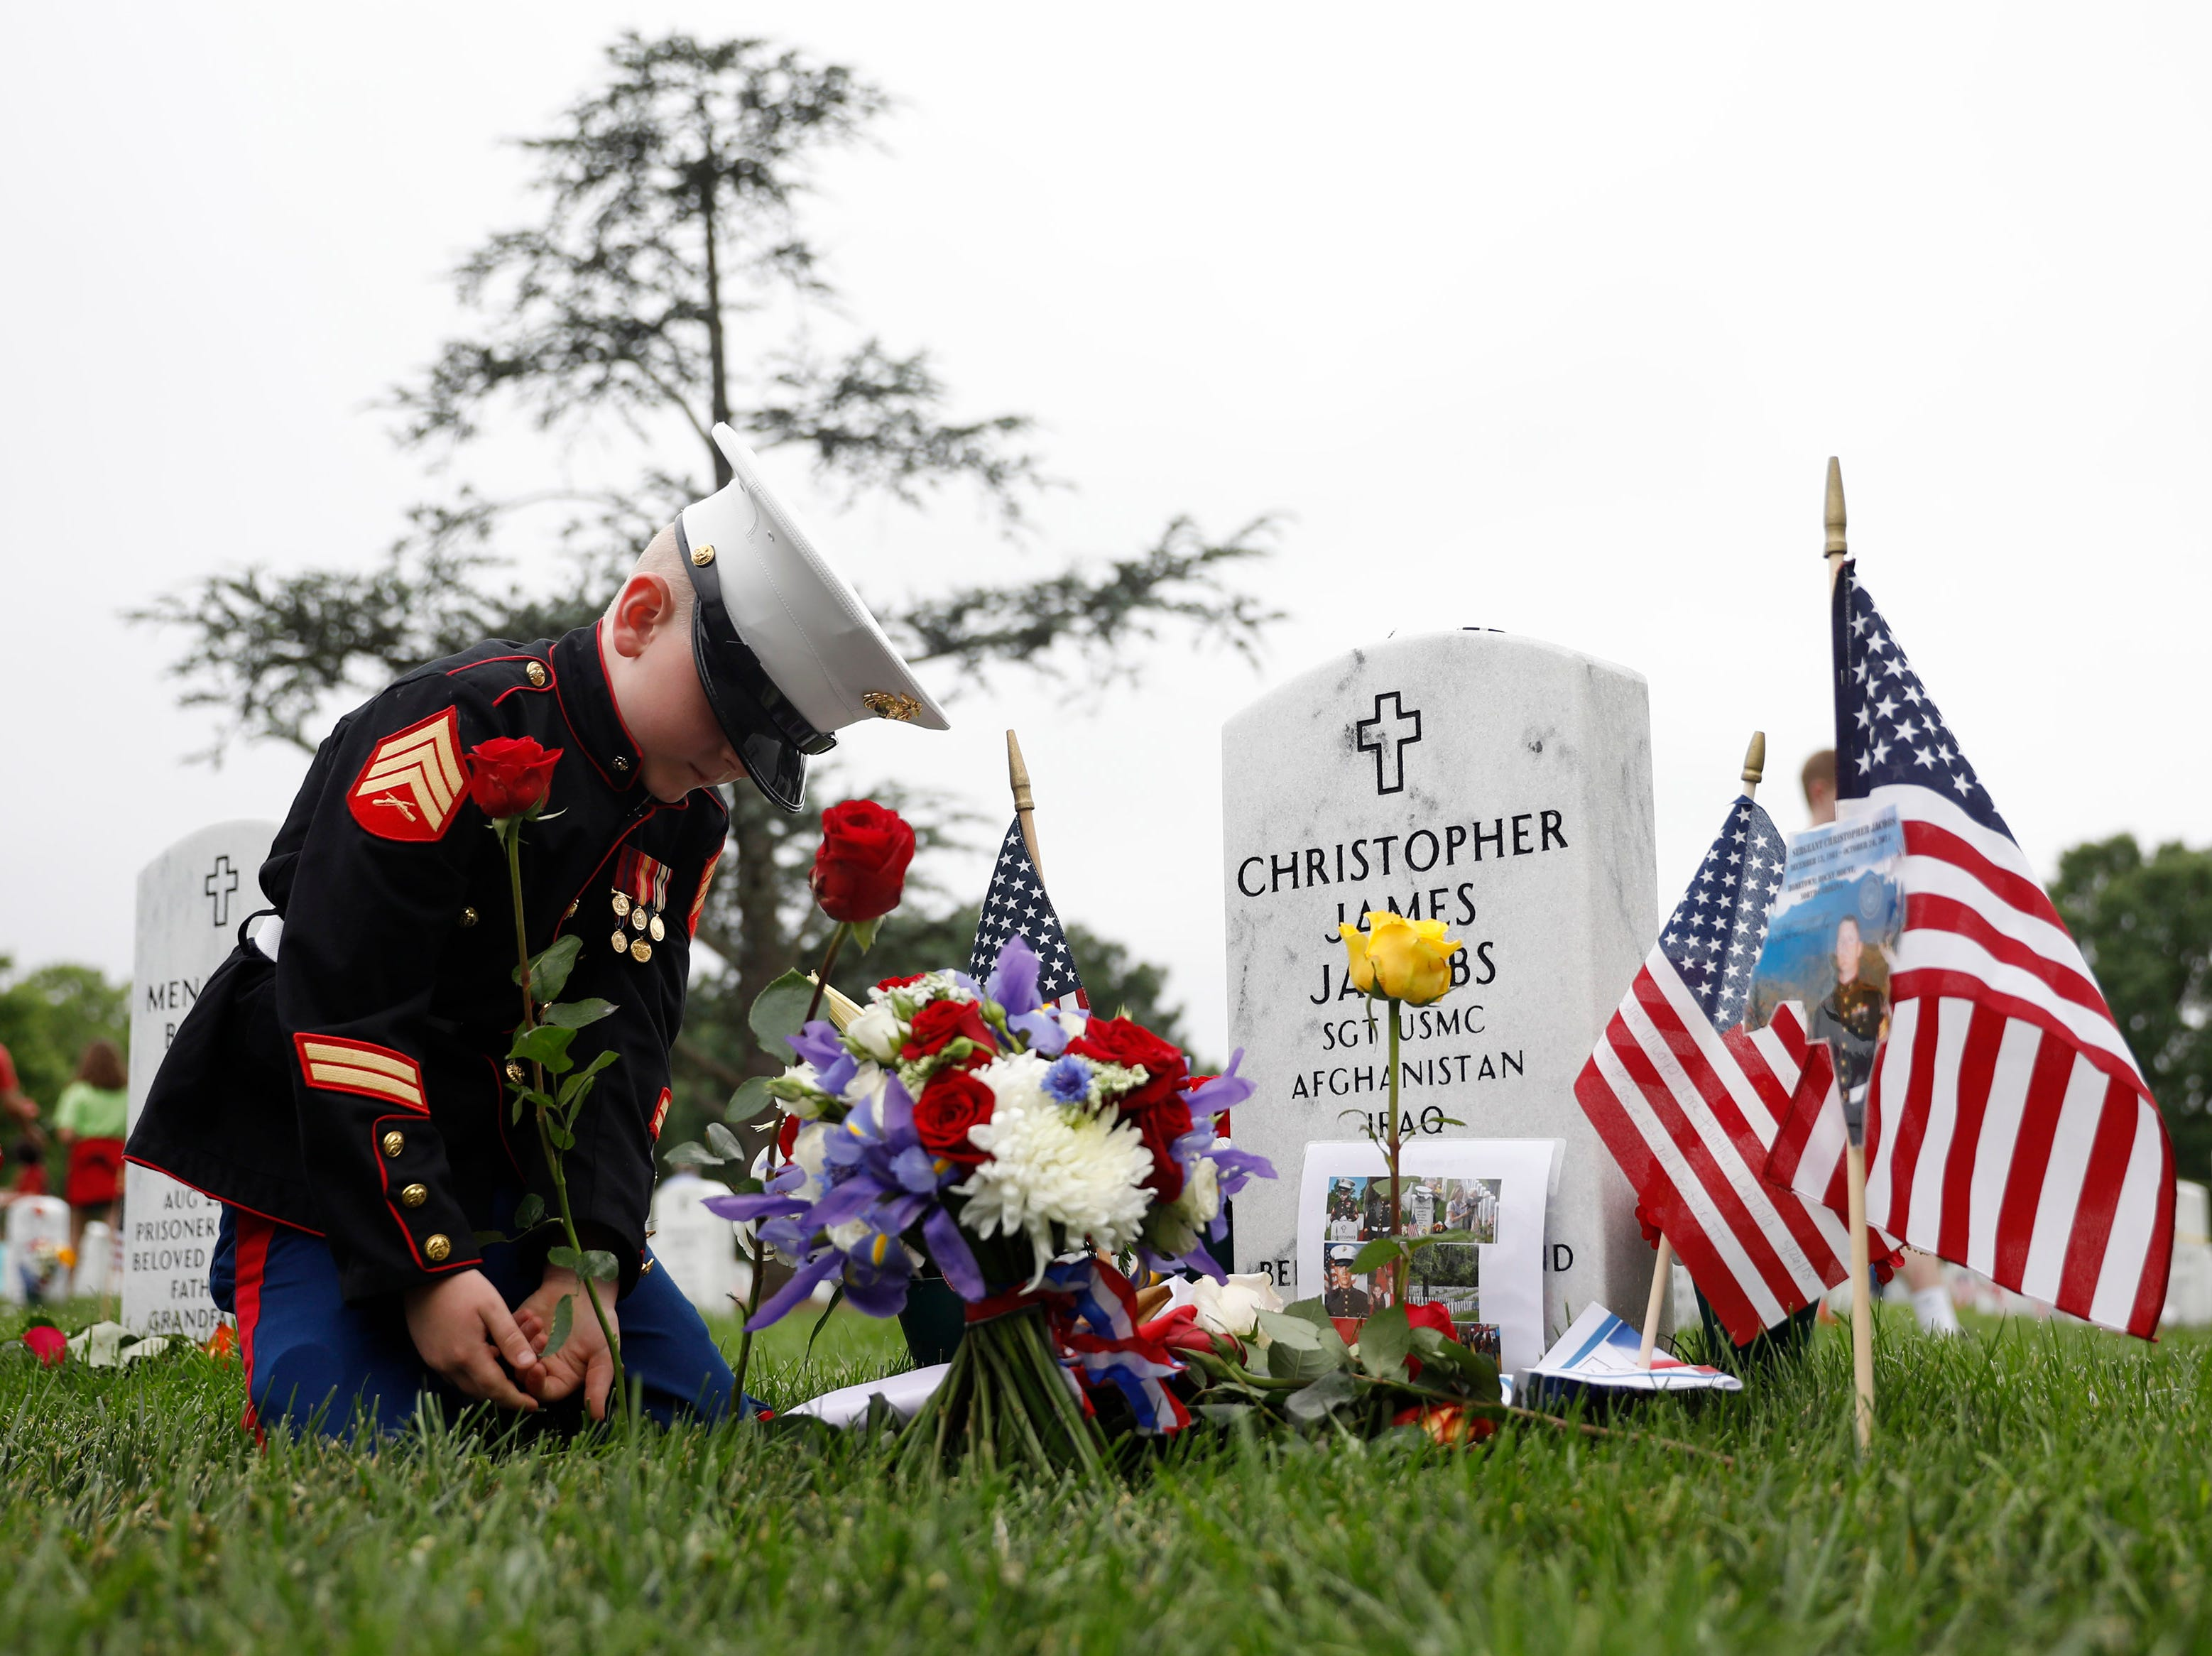 May 27, 2018: Christian Jacobs places a flower near the headstone of his father, Marine Sgt. Christopher Jacobs at Arlington National Cemetery on Memorial Day in Arlington, Va.